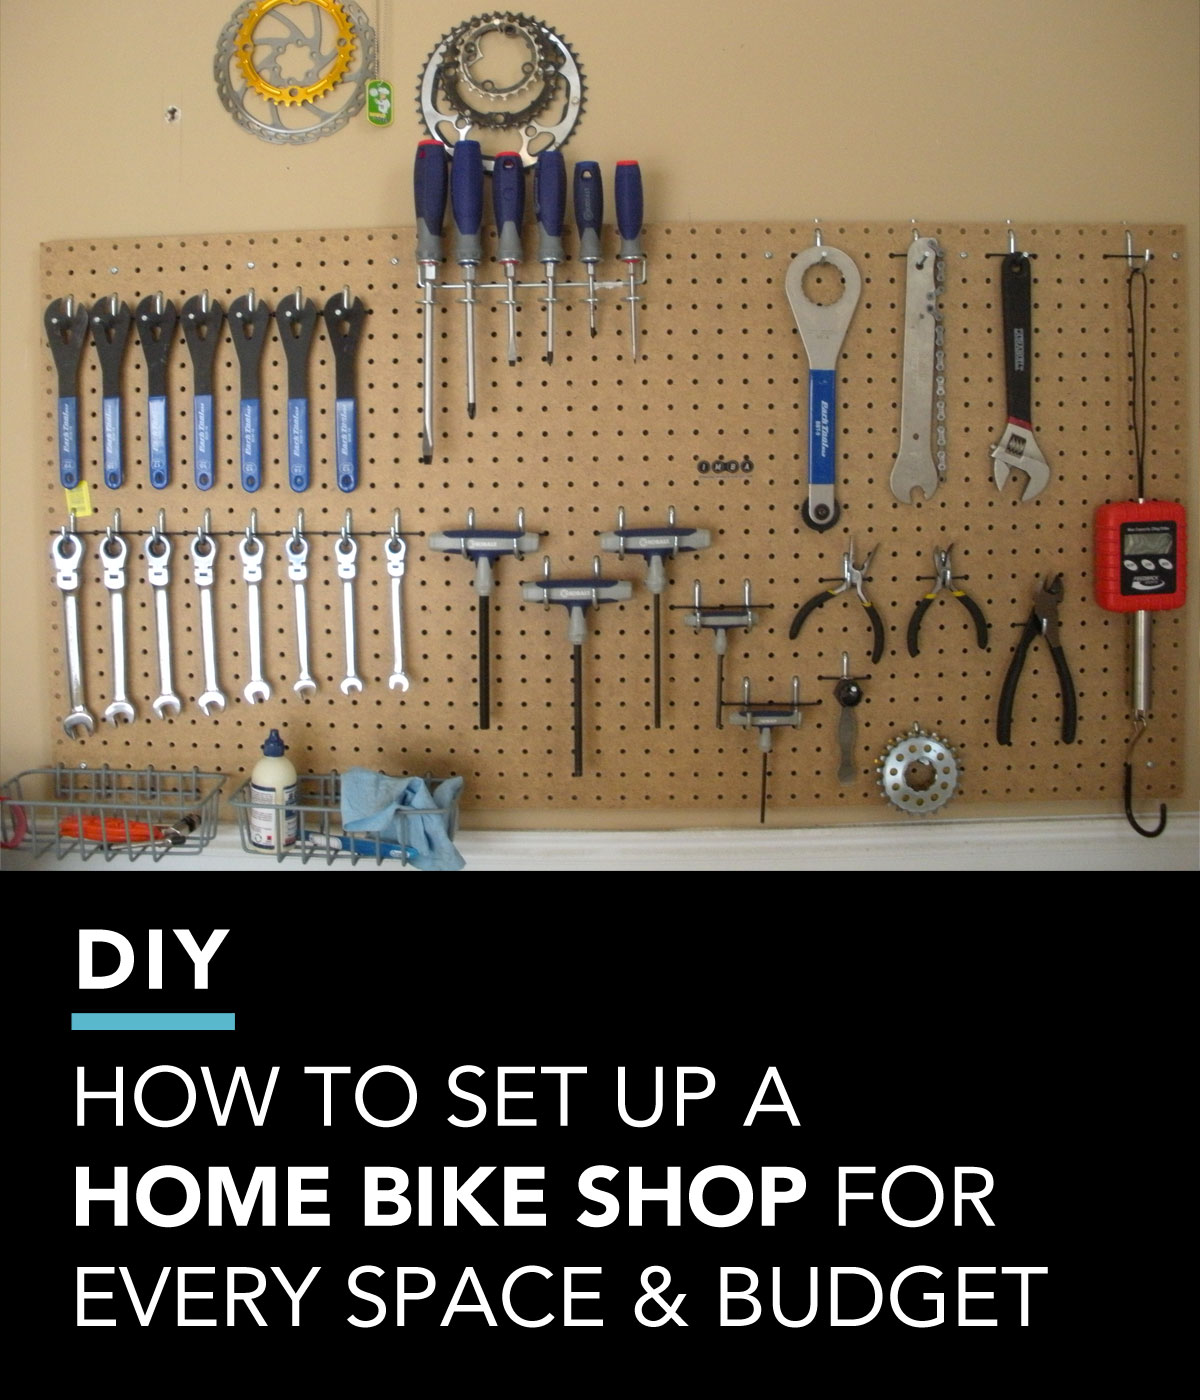 How to Set Up a Home Bike Shop For Every Space and Budget